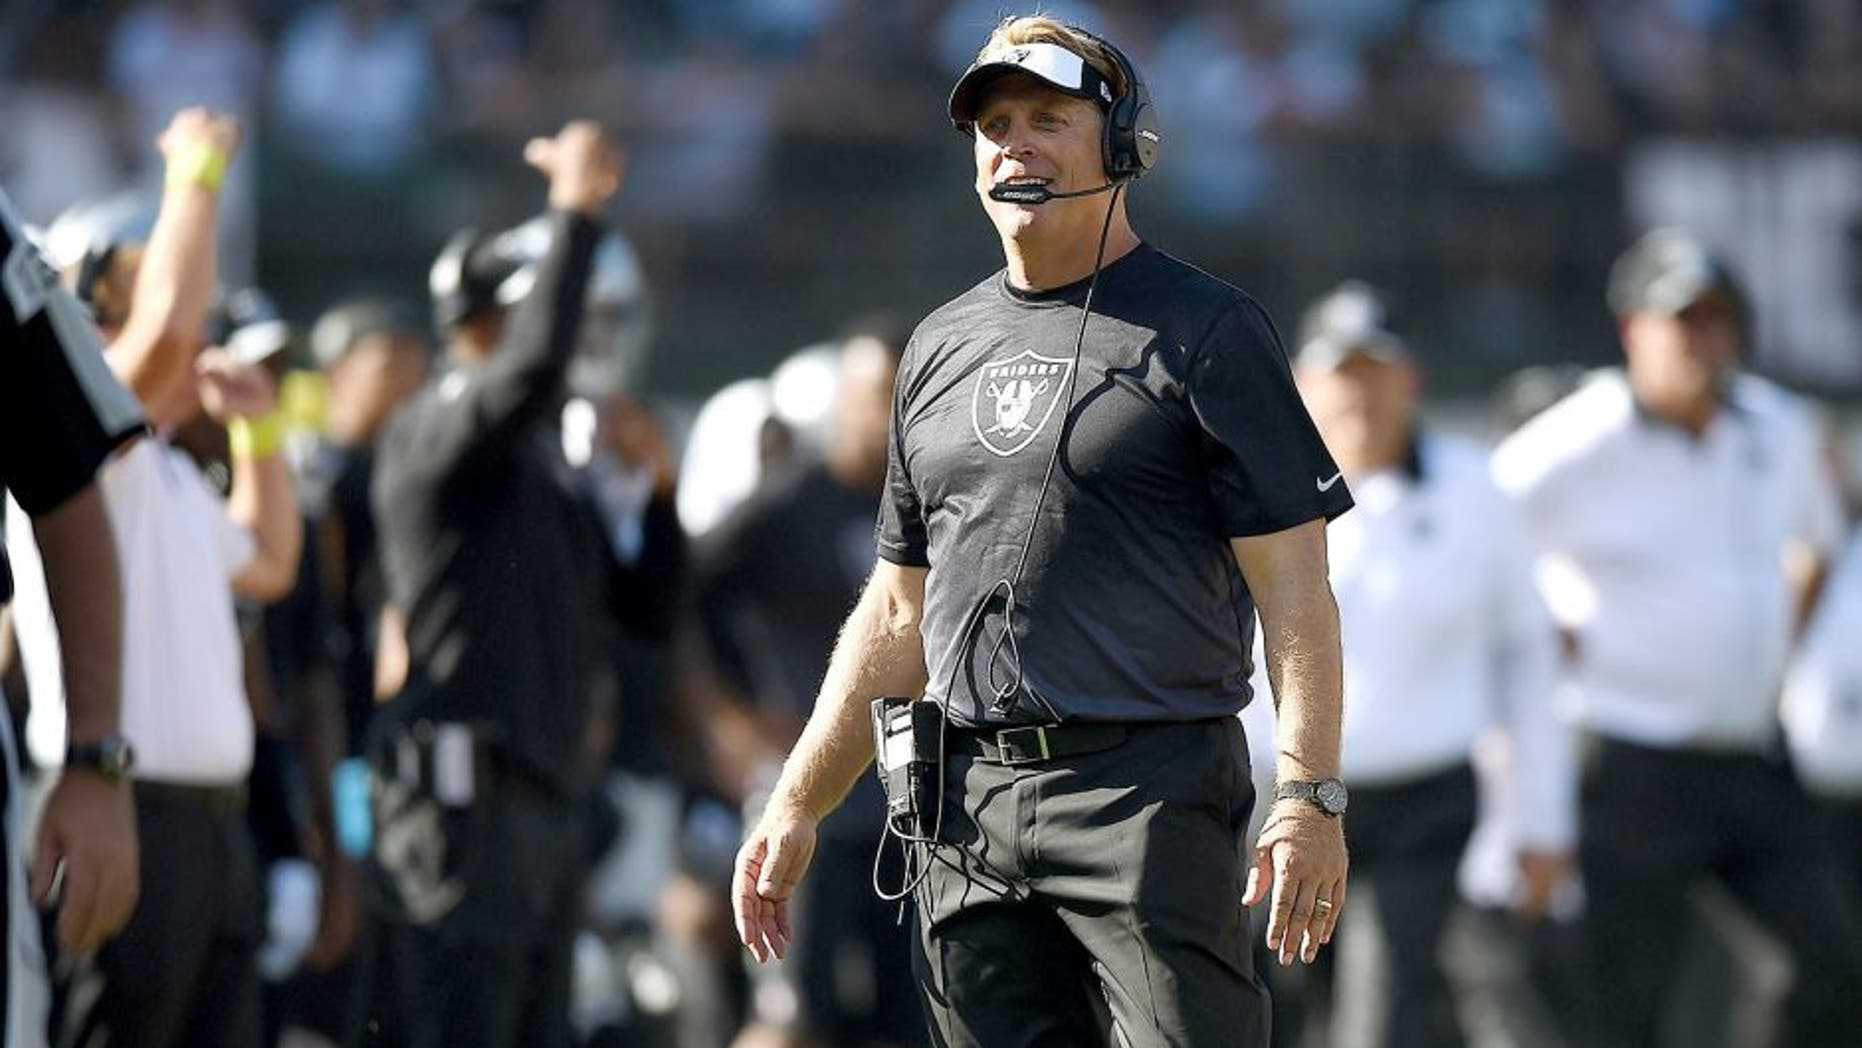 OAKLAND, CA - SEPTEMBER 20: head coach Jack Del Rio of the Oakland Raiders watches the replay in the fourth quarter against the Baltimore Ravens at Oakland-Alameda County Coliseum on September 20, 2015 in Oakland, California. (Photo by Thearon W. Henderson/Getty Images)